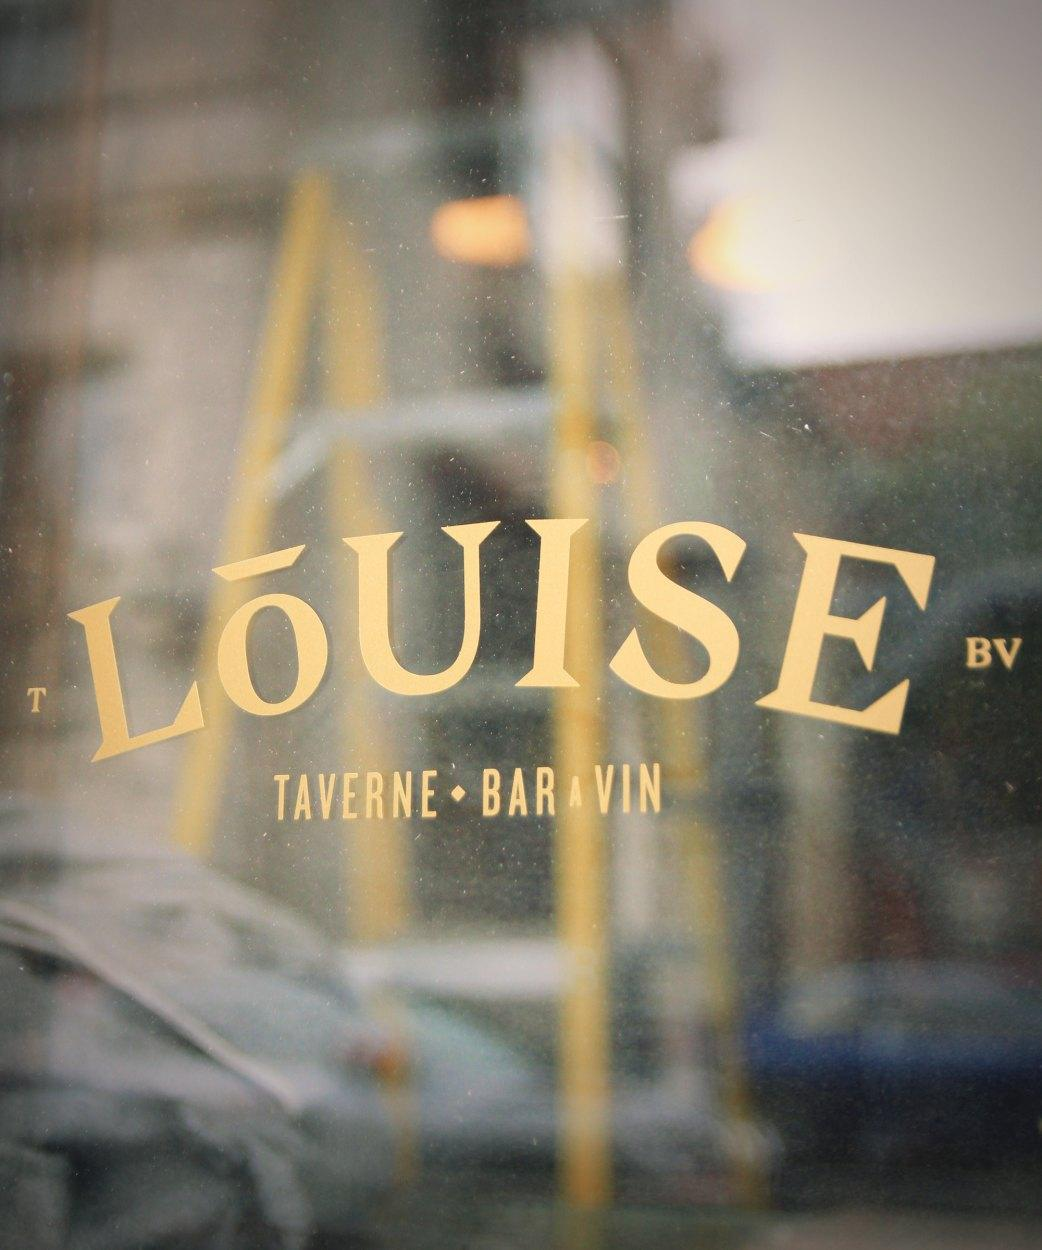 Louise Taverne & Bar à Vin - Old-Port, Quebec - Creative Cuisine Restaurant